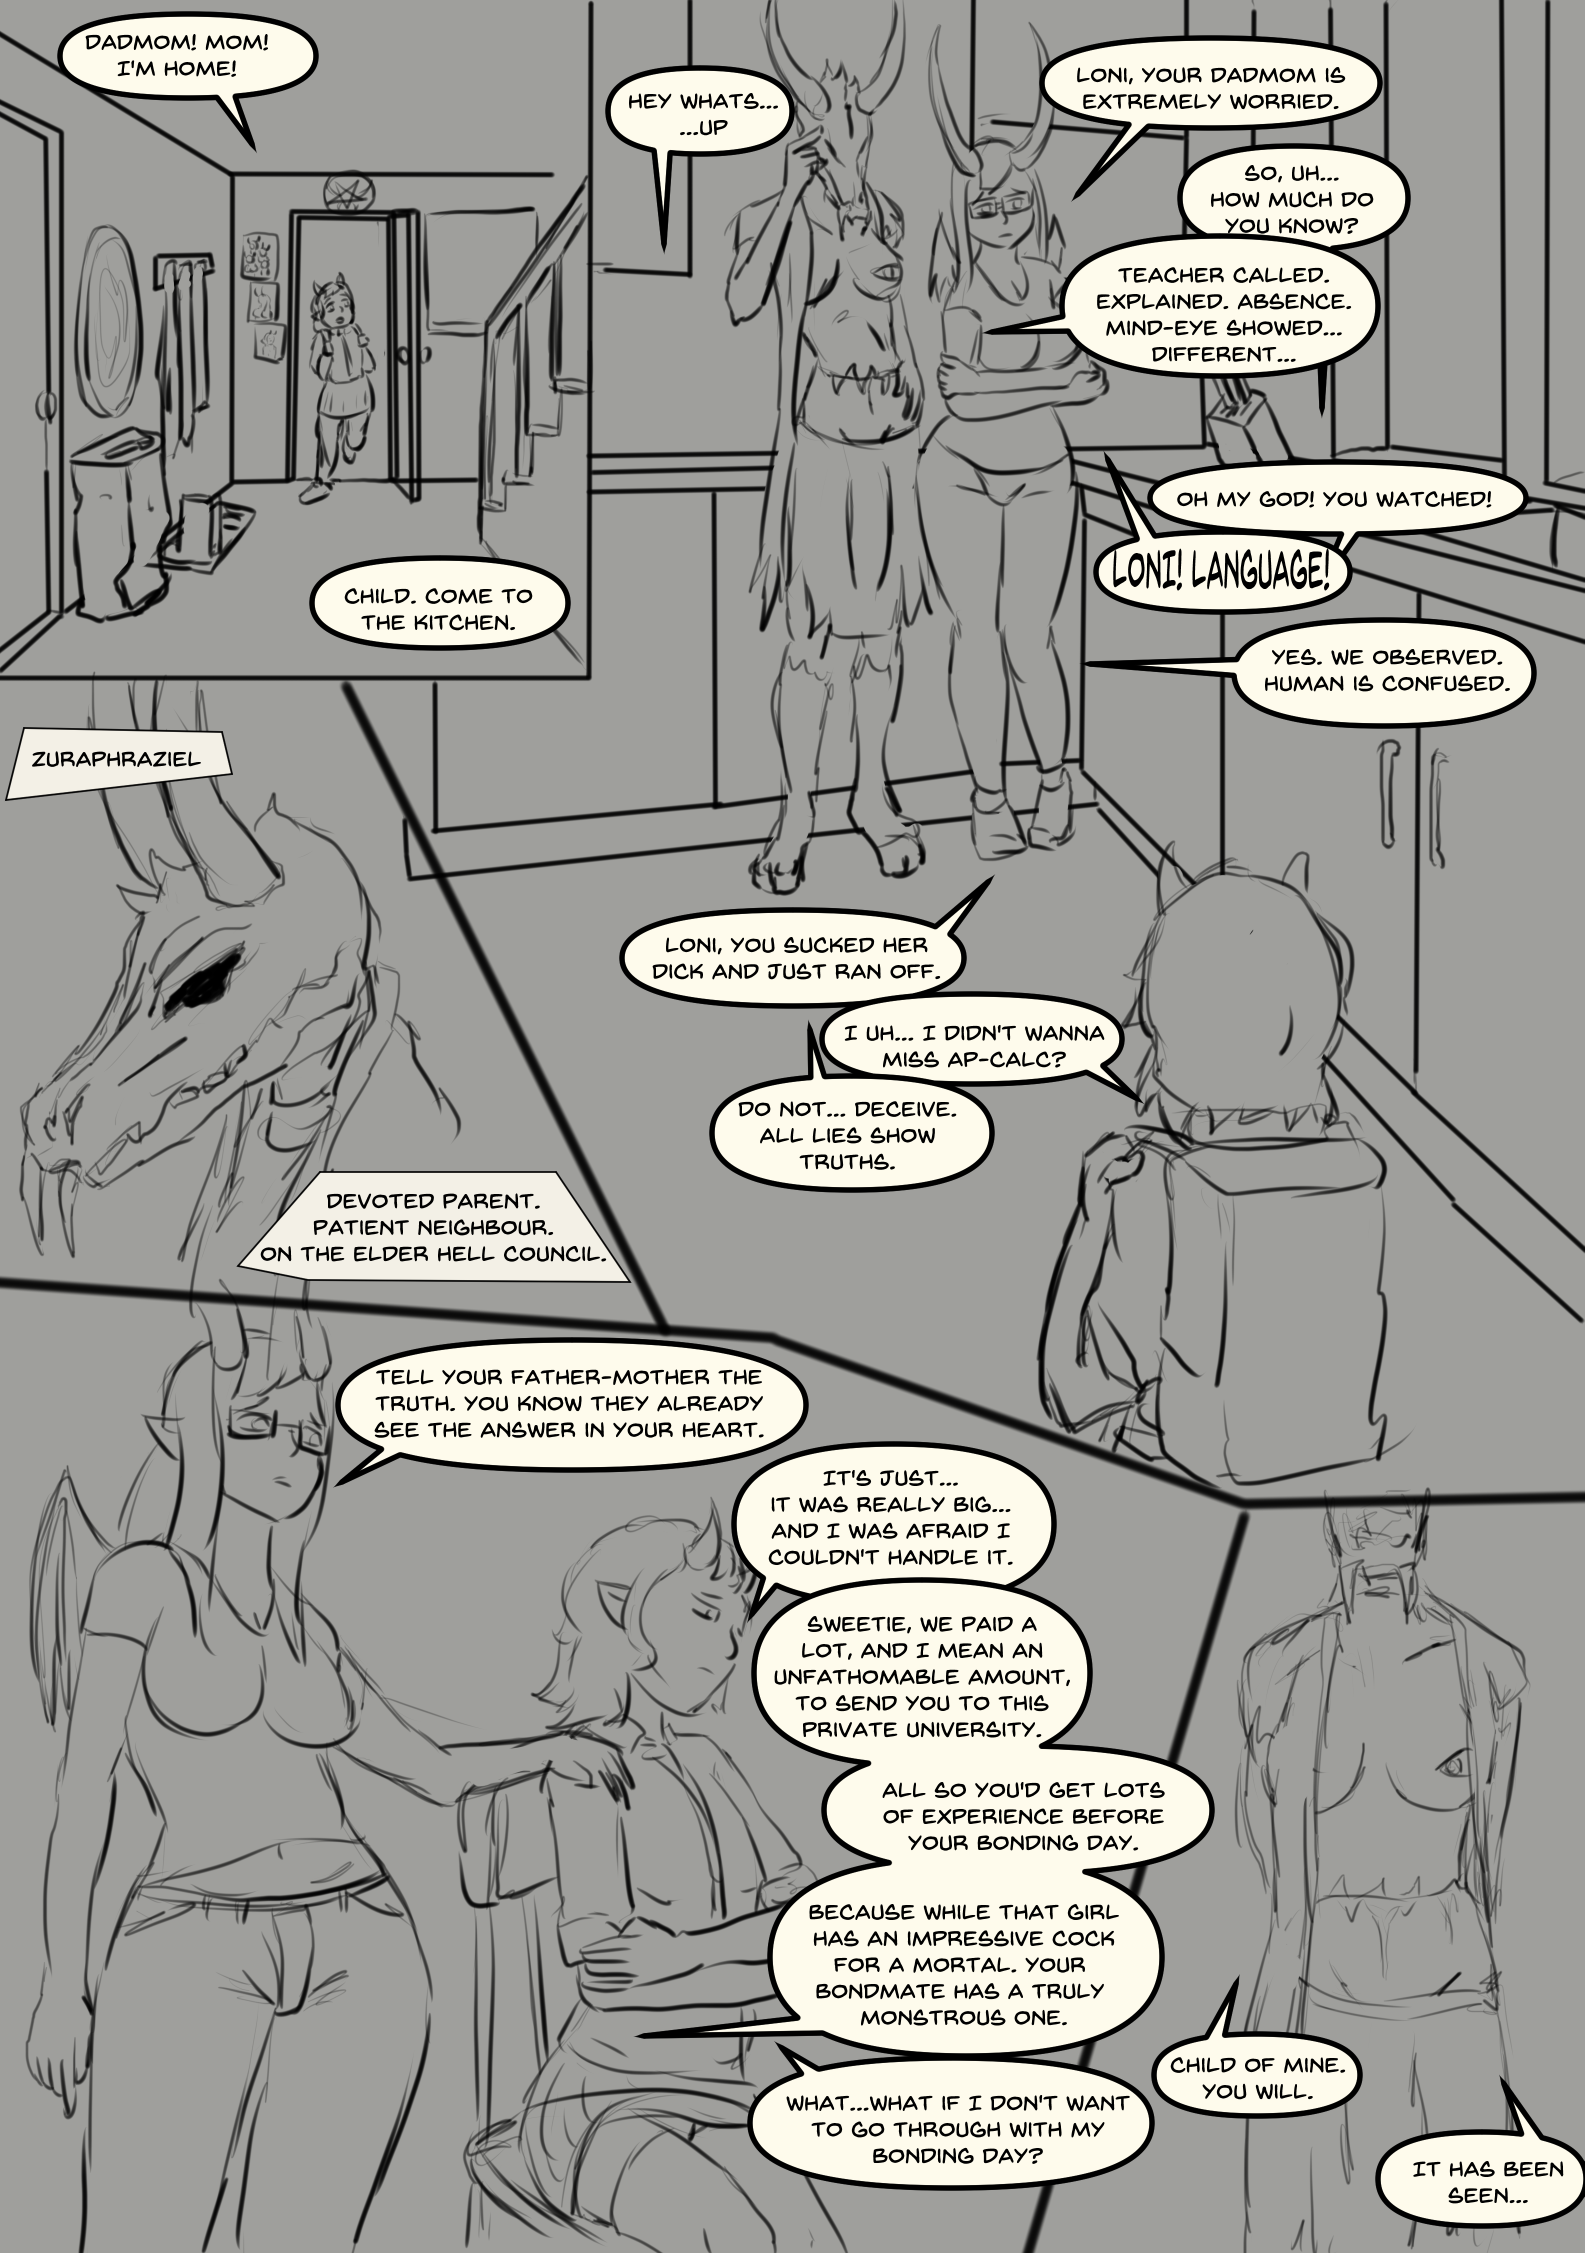 Reproductive Health: Chapter 1, Page 7